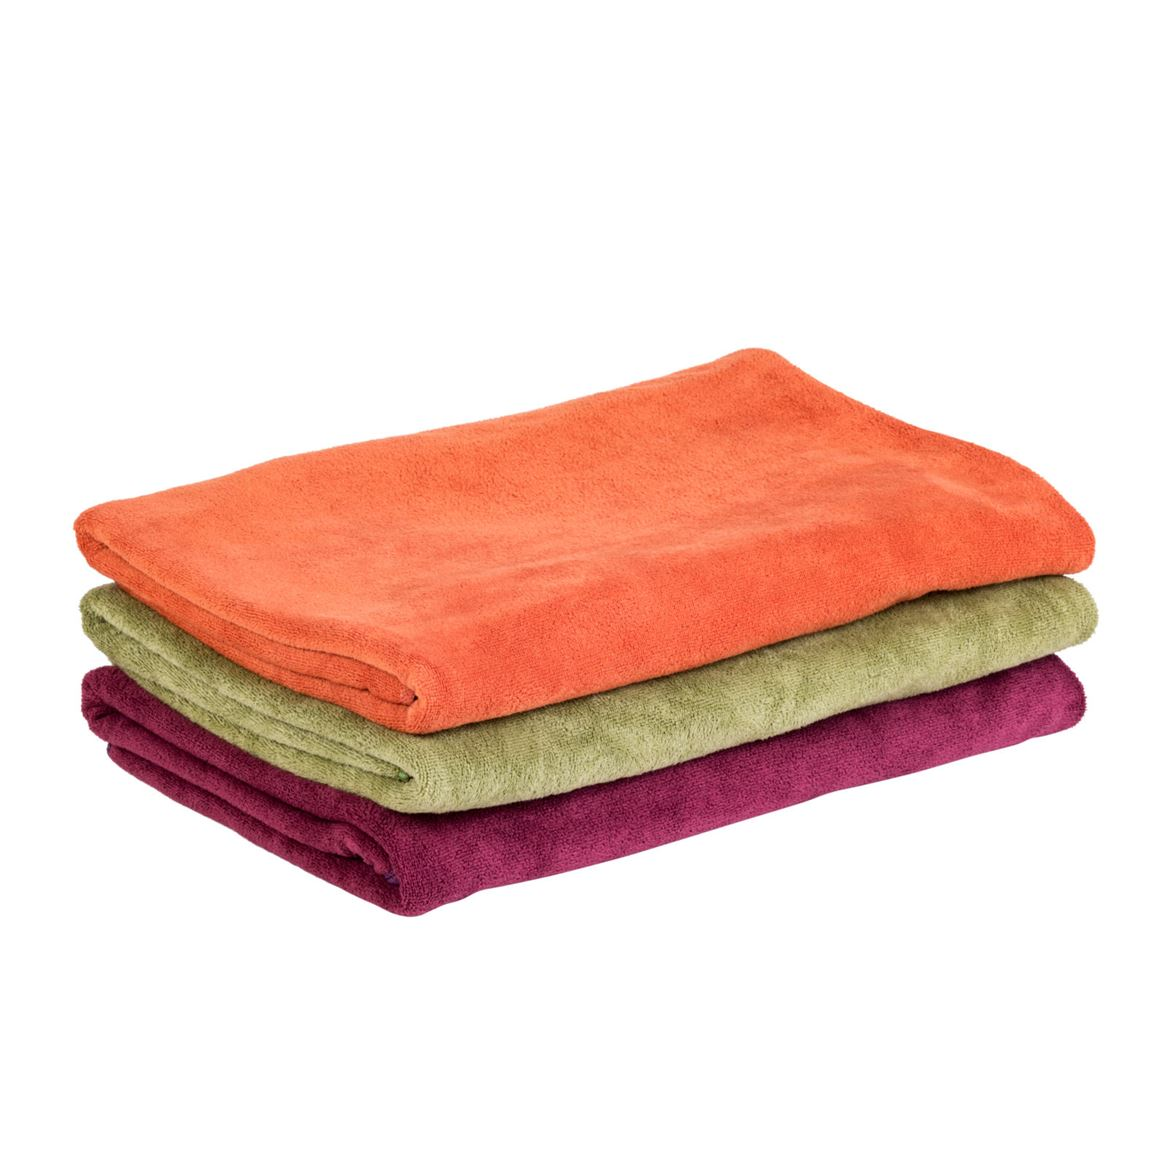 Handtücher Orange Voyage Handtuch Rot Orange Grün B 70 X L 140 Cm